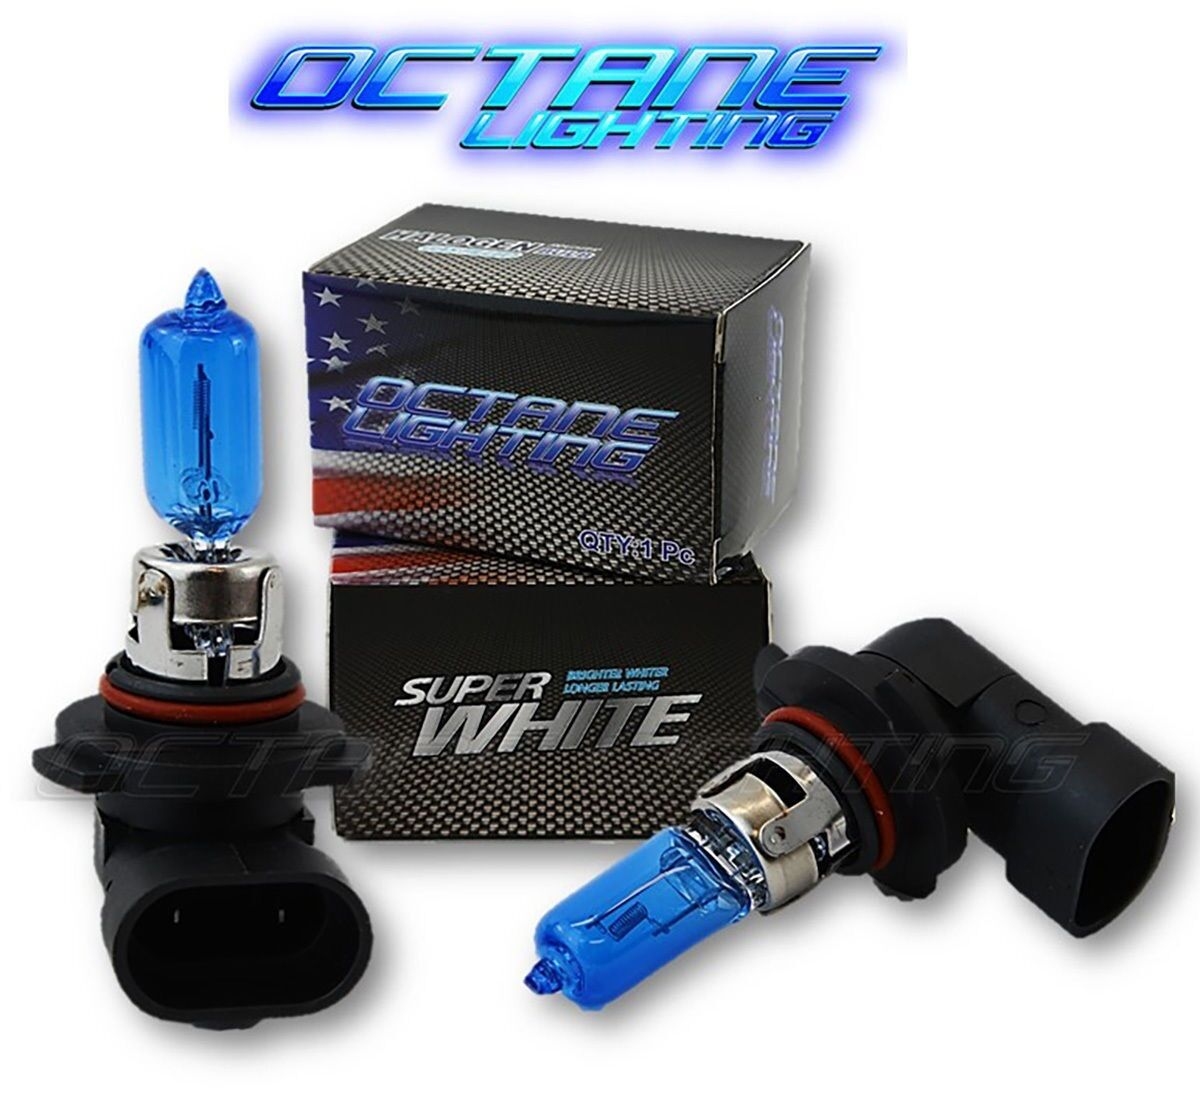 H11 Halogen Xenon Plasma HID Headlight Fog Headlamp Super White 6000K Light Bulb